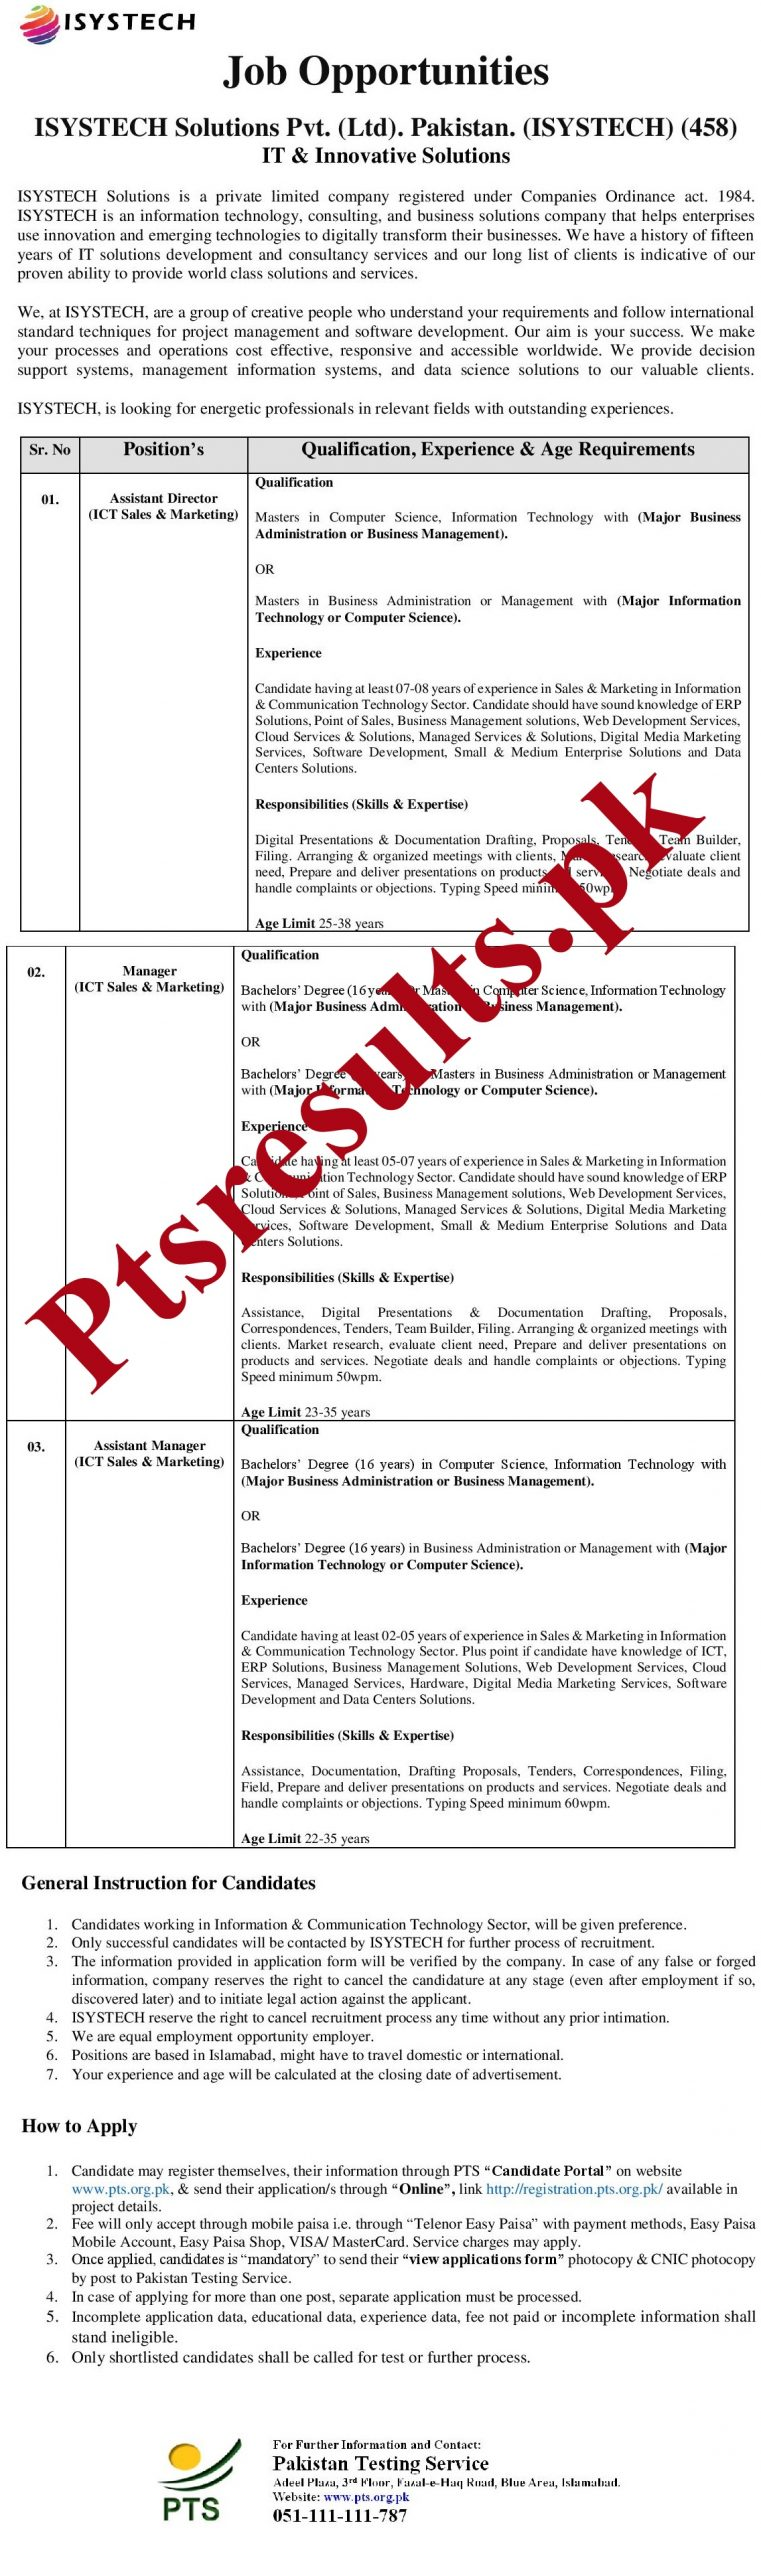 ISYSTECH Solutions Pvt PTS Jobs